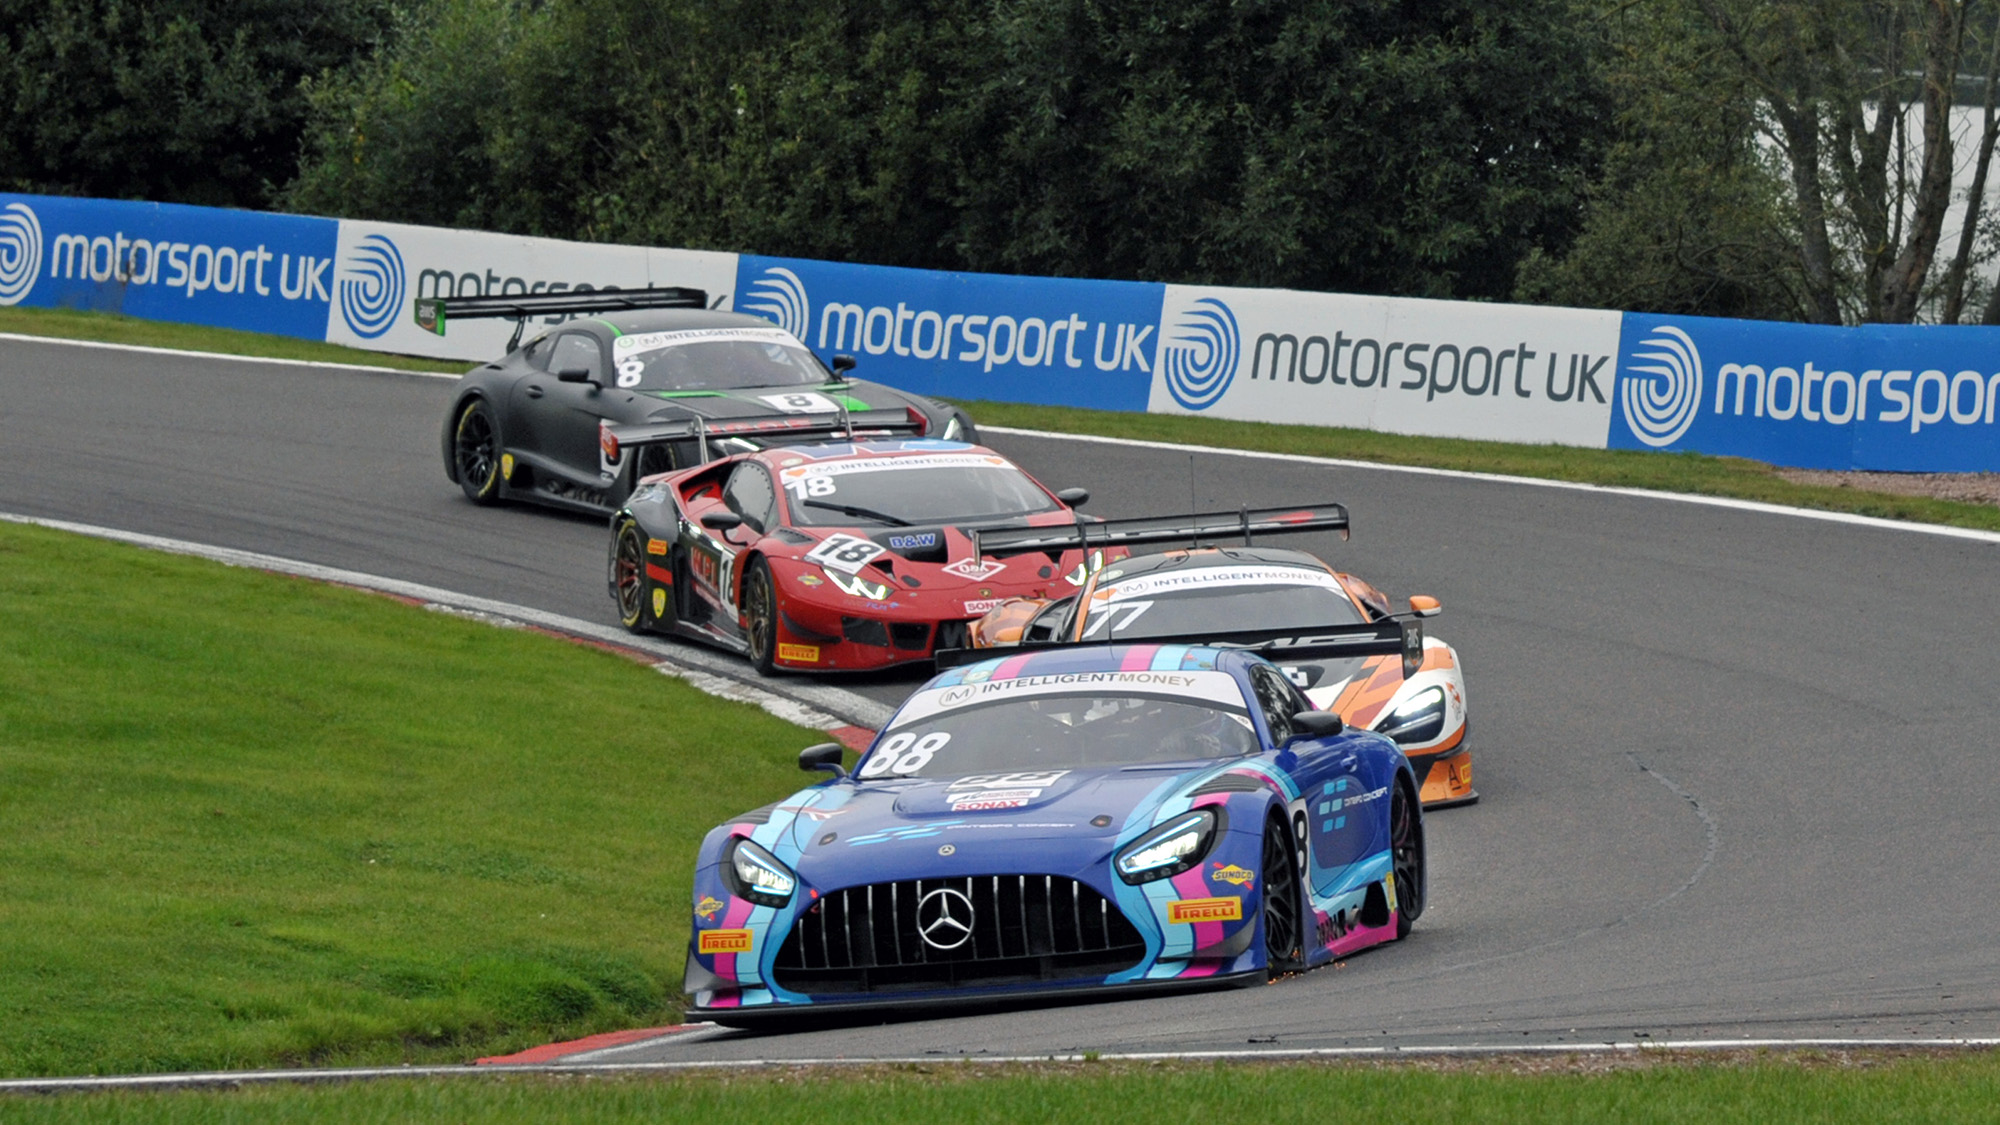 Kevin Tse leads in his RAM Mercedes at Oulton Park